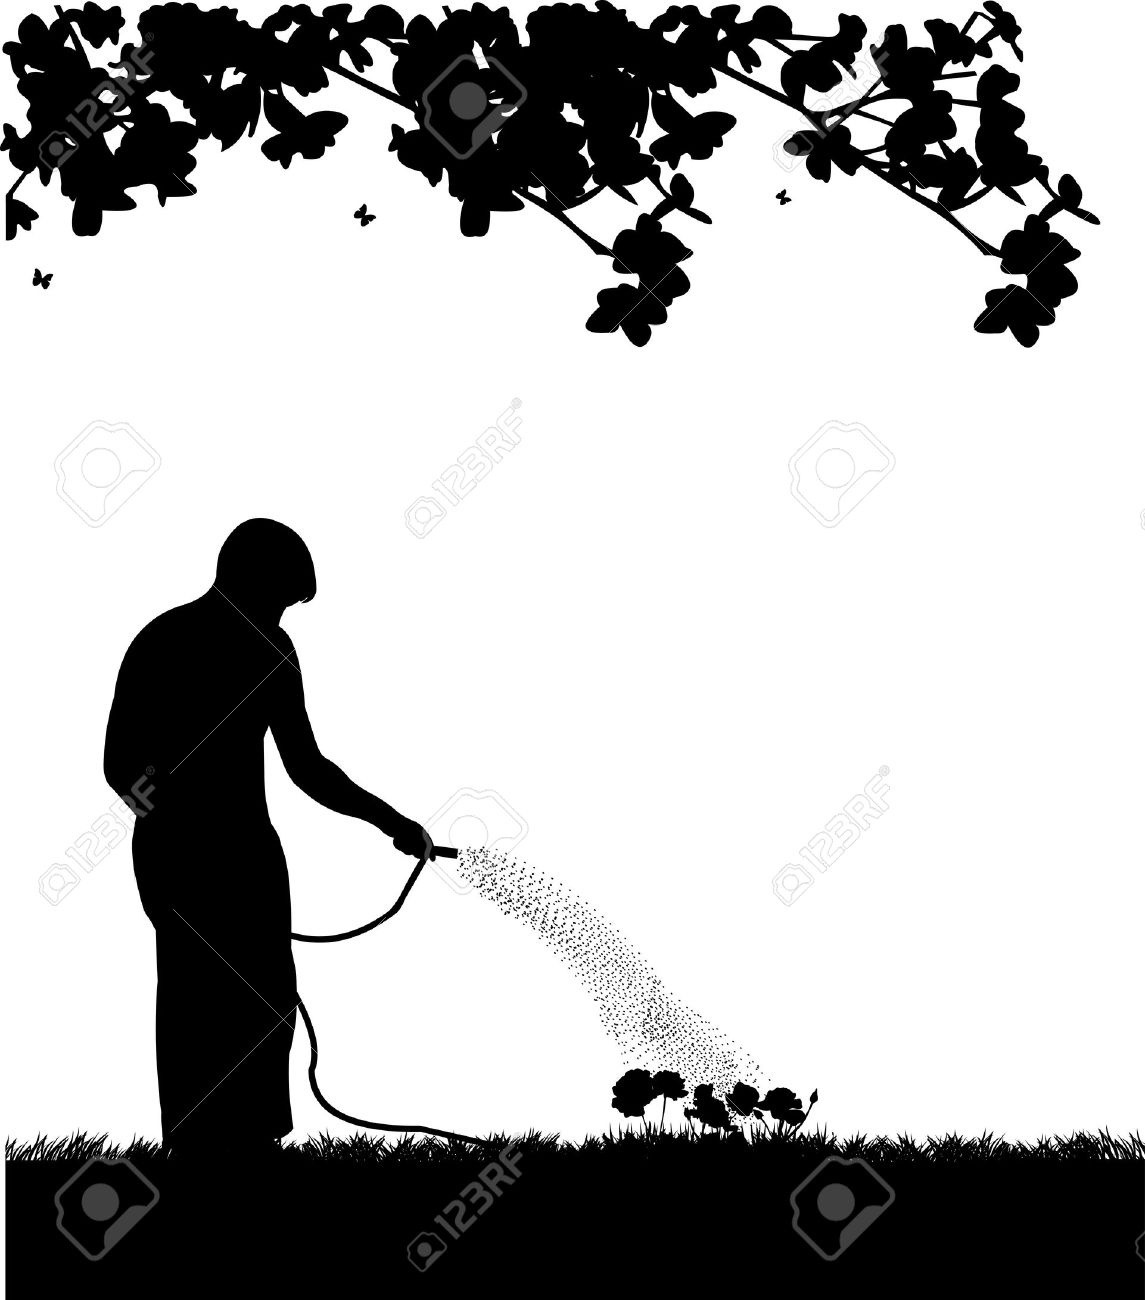 15,182 Gardening Tools Stock Illustrations, Cliparts And Royalty.